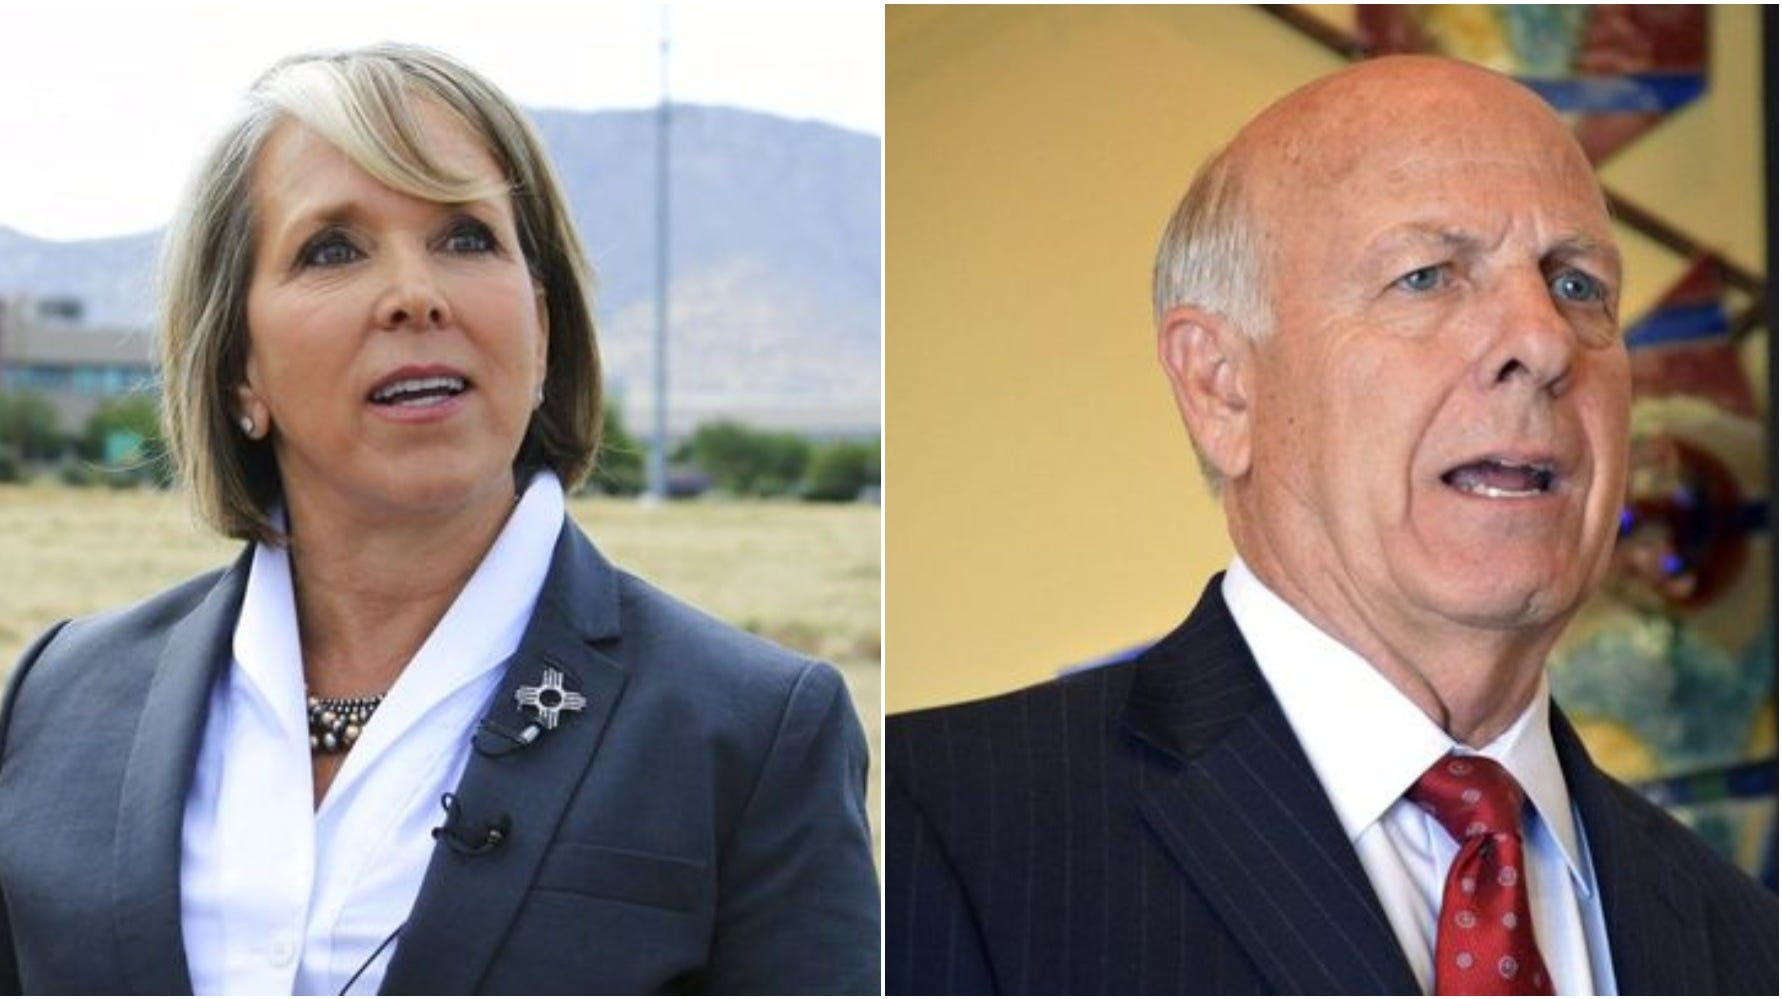 New Mexico governor candidates: Democrat Michelle Lujan Grisham, left, and Republican Steve Pearce.